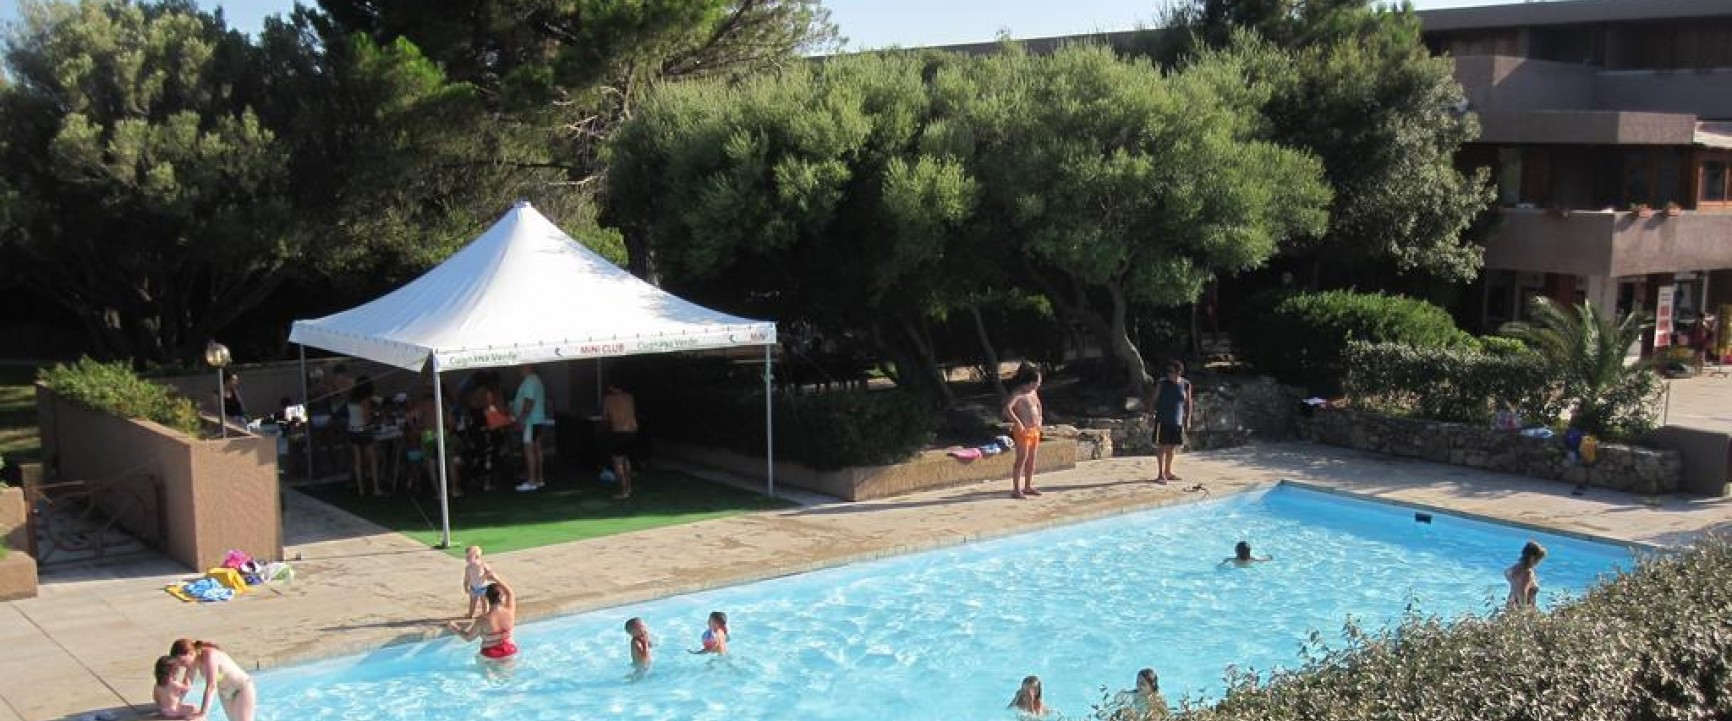 Villaggio Club Cugnana Verde